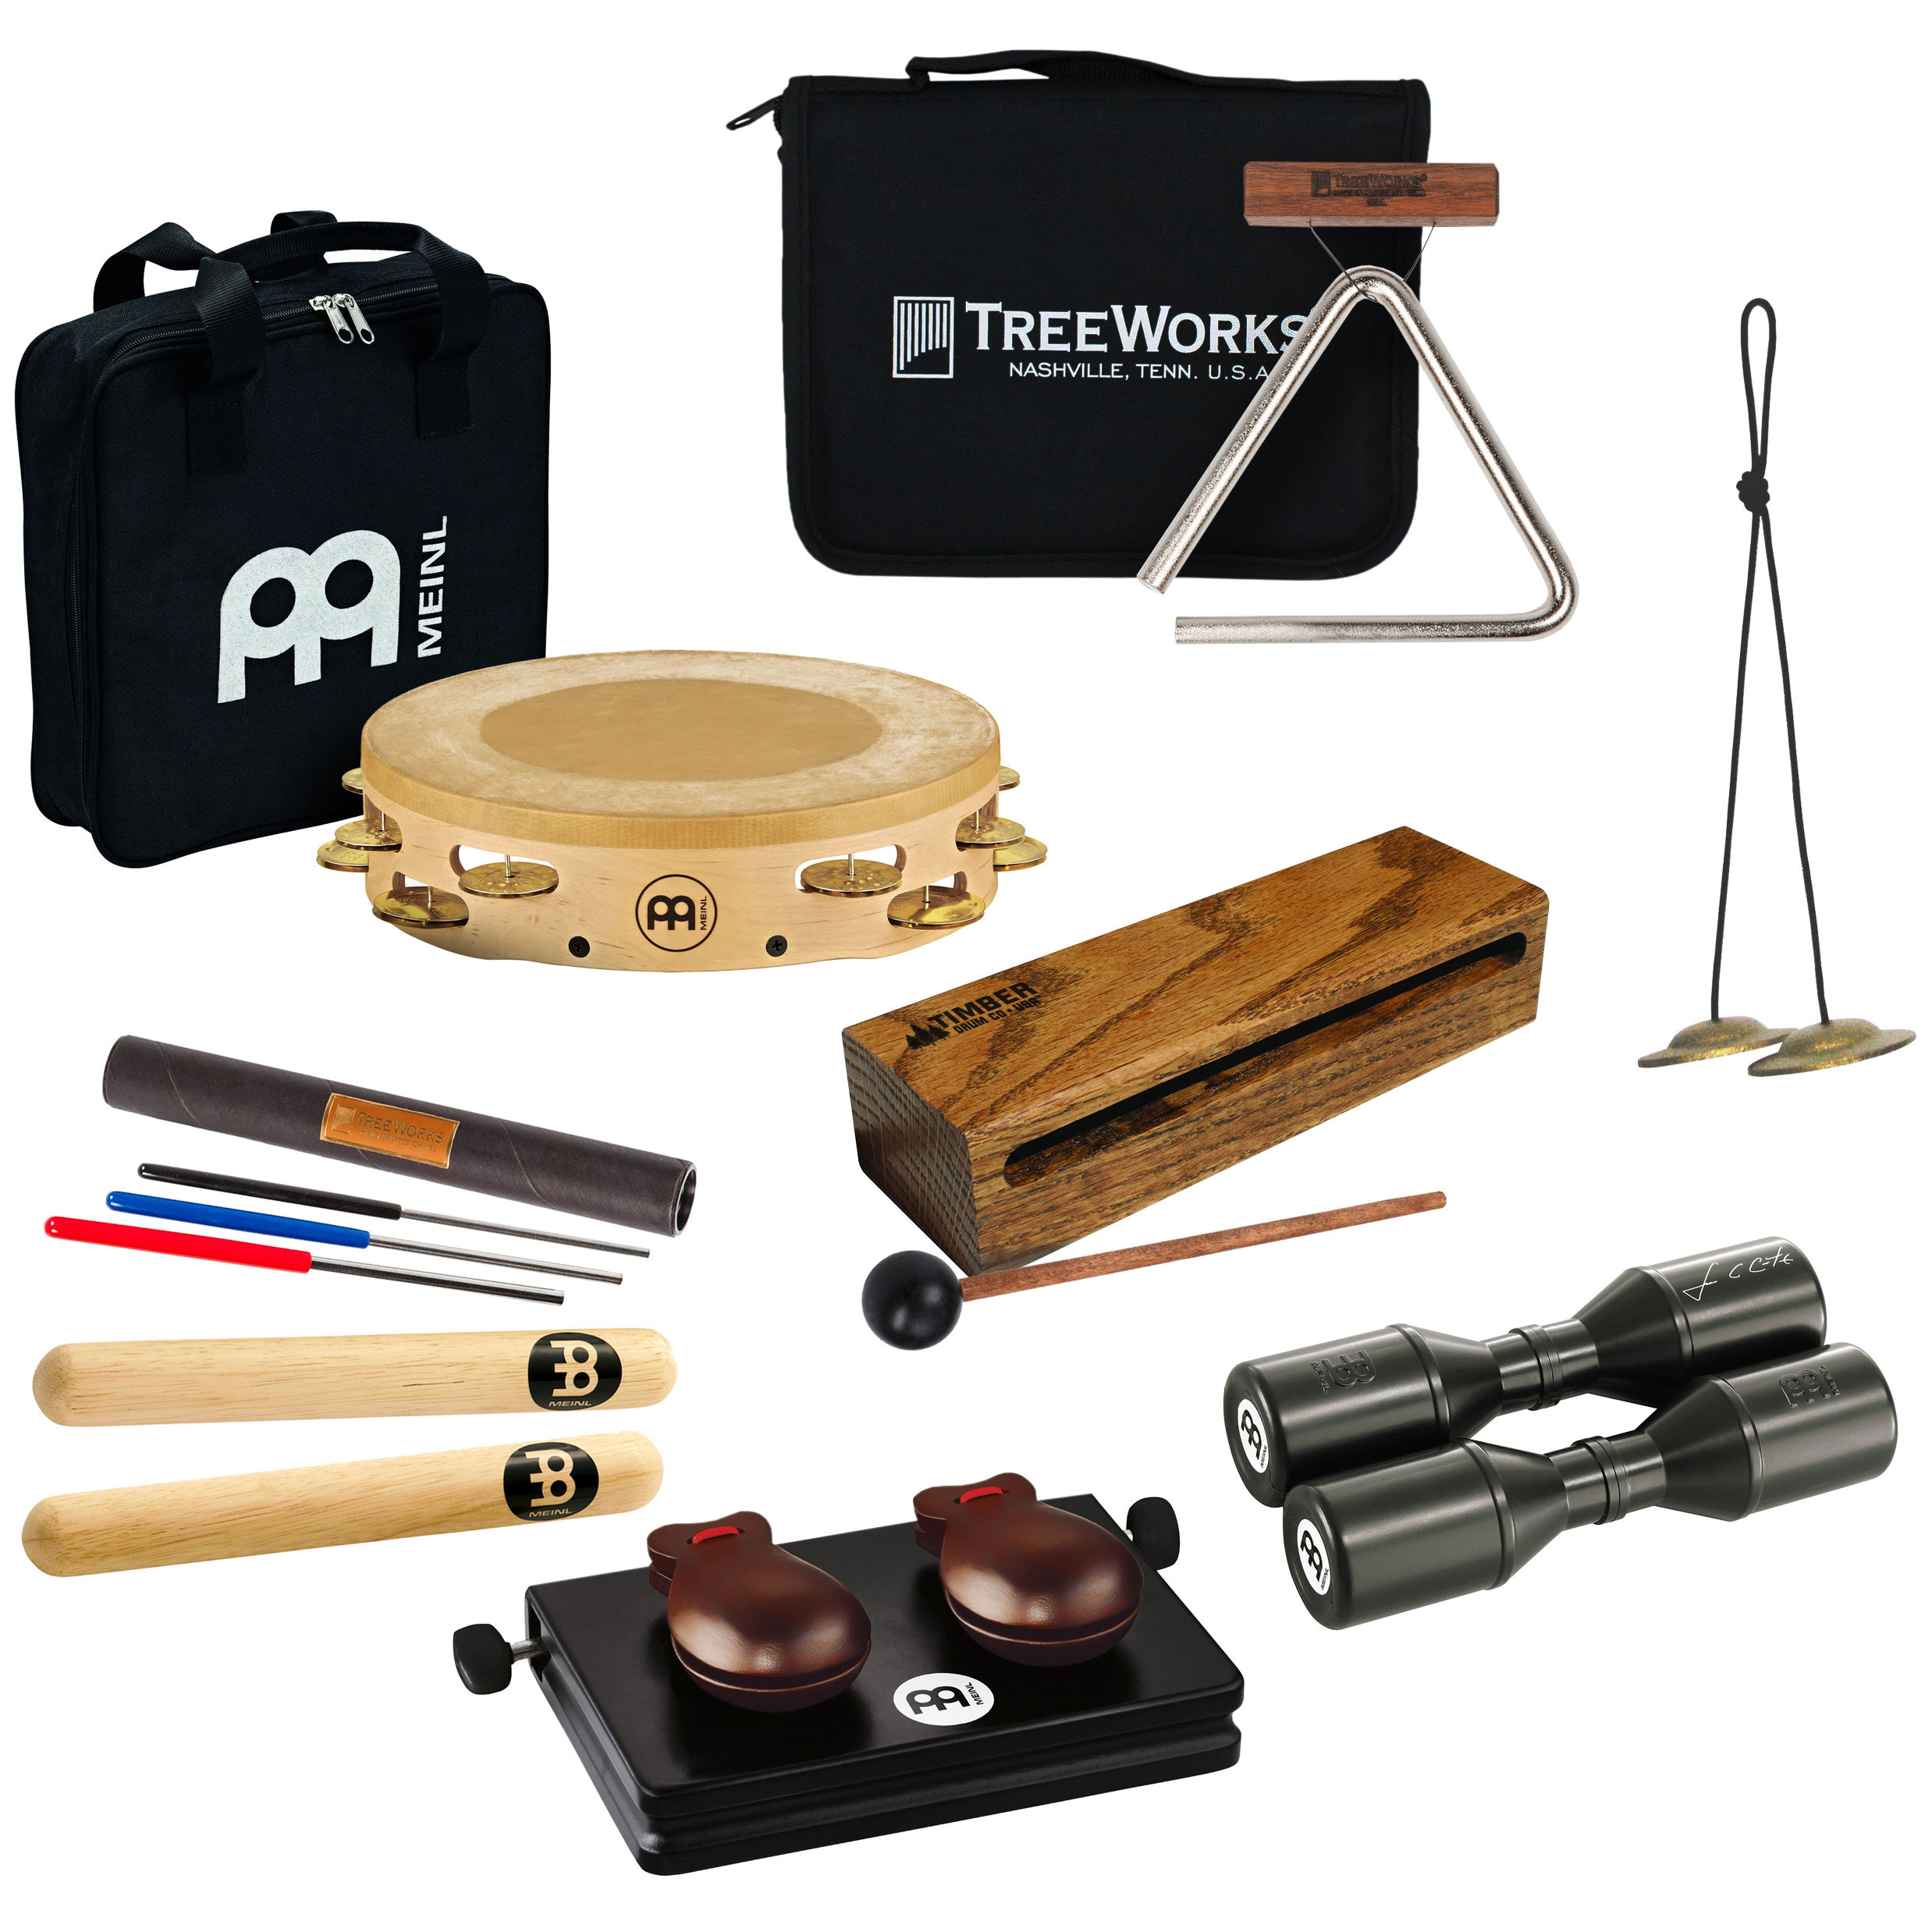 Meinl/Treeworks Off To College